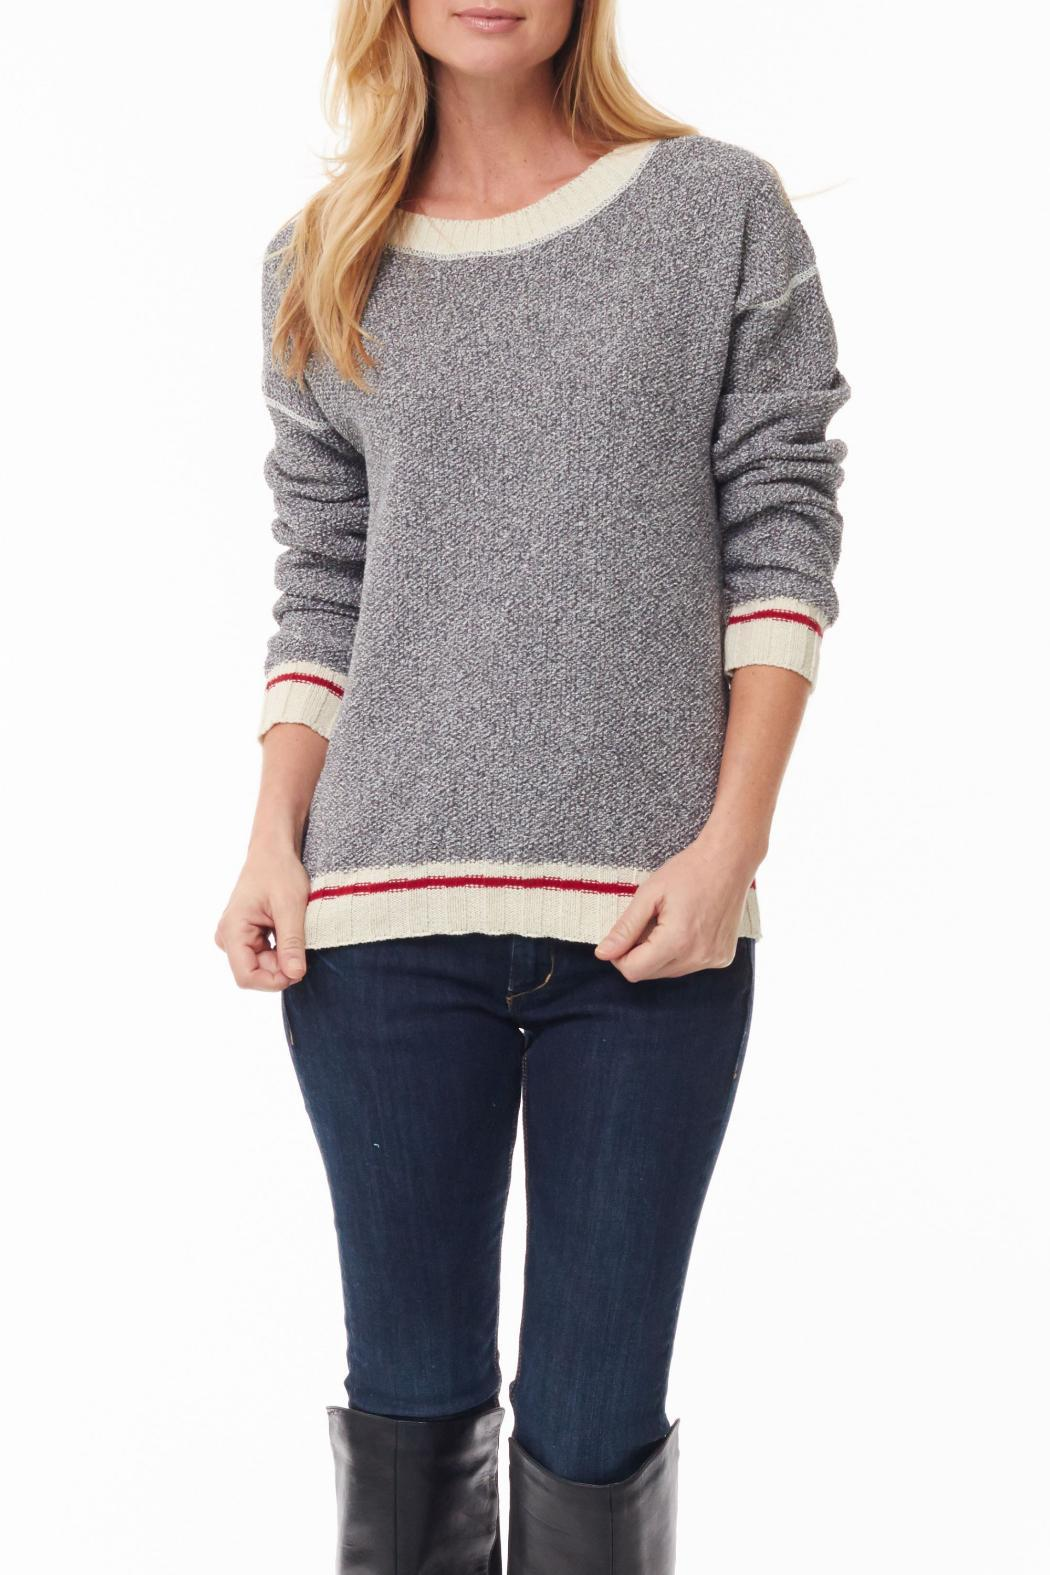 Cotton Country Alessandra Sweater from Canada by The Old Mill ...